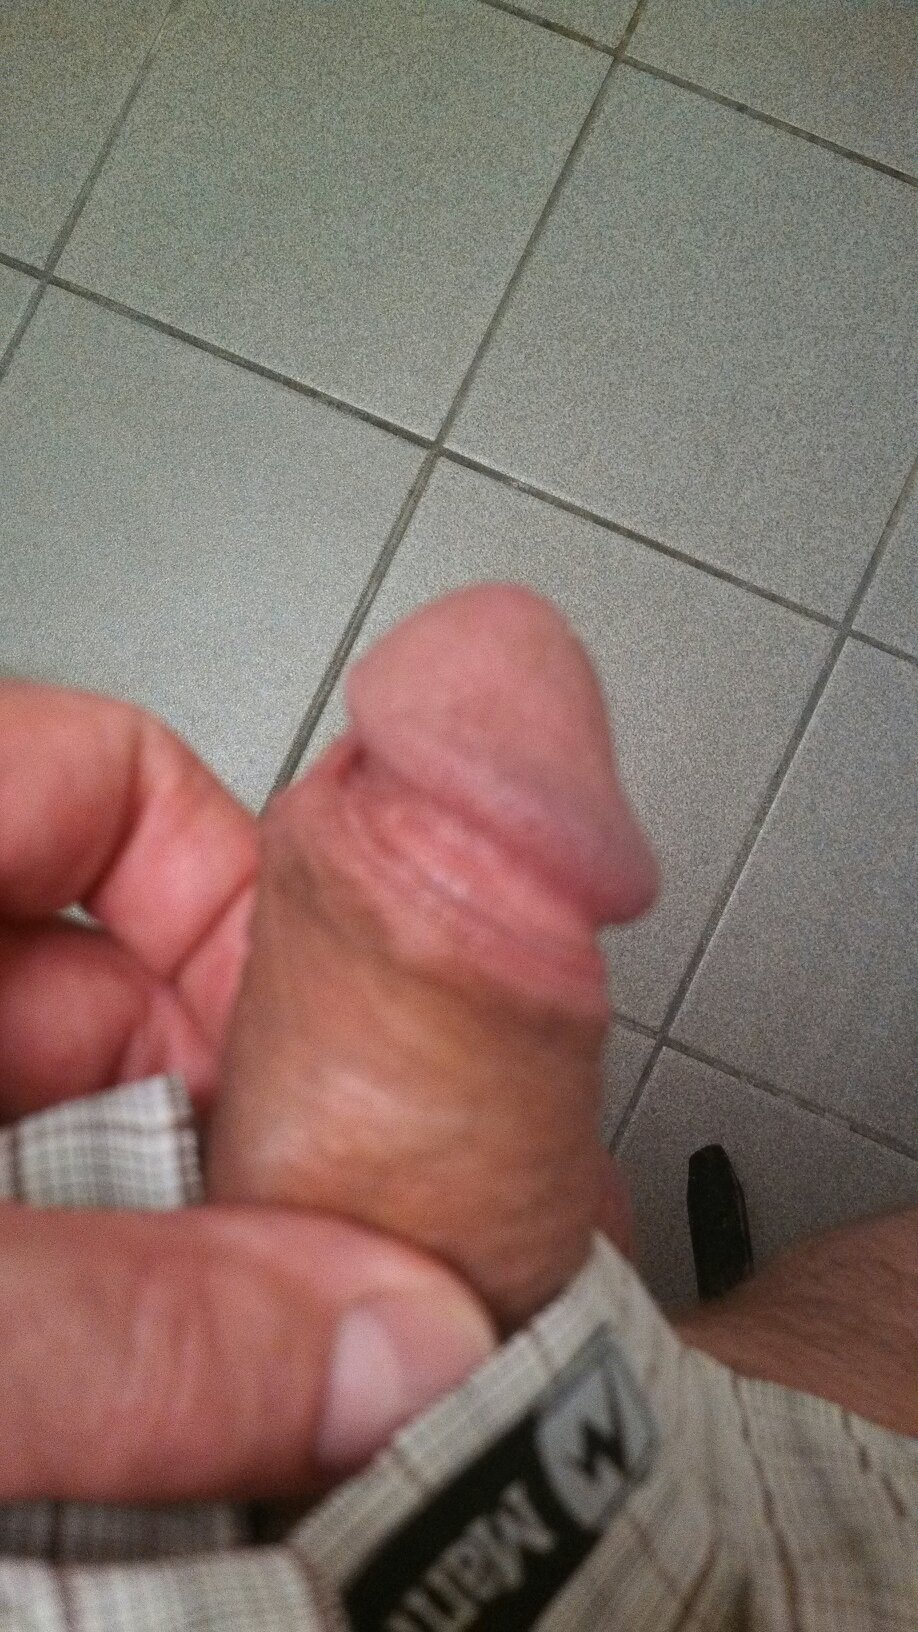 penis pain after sex